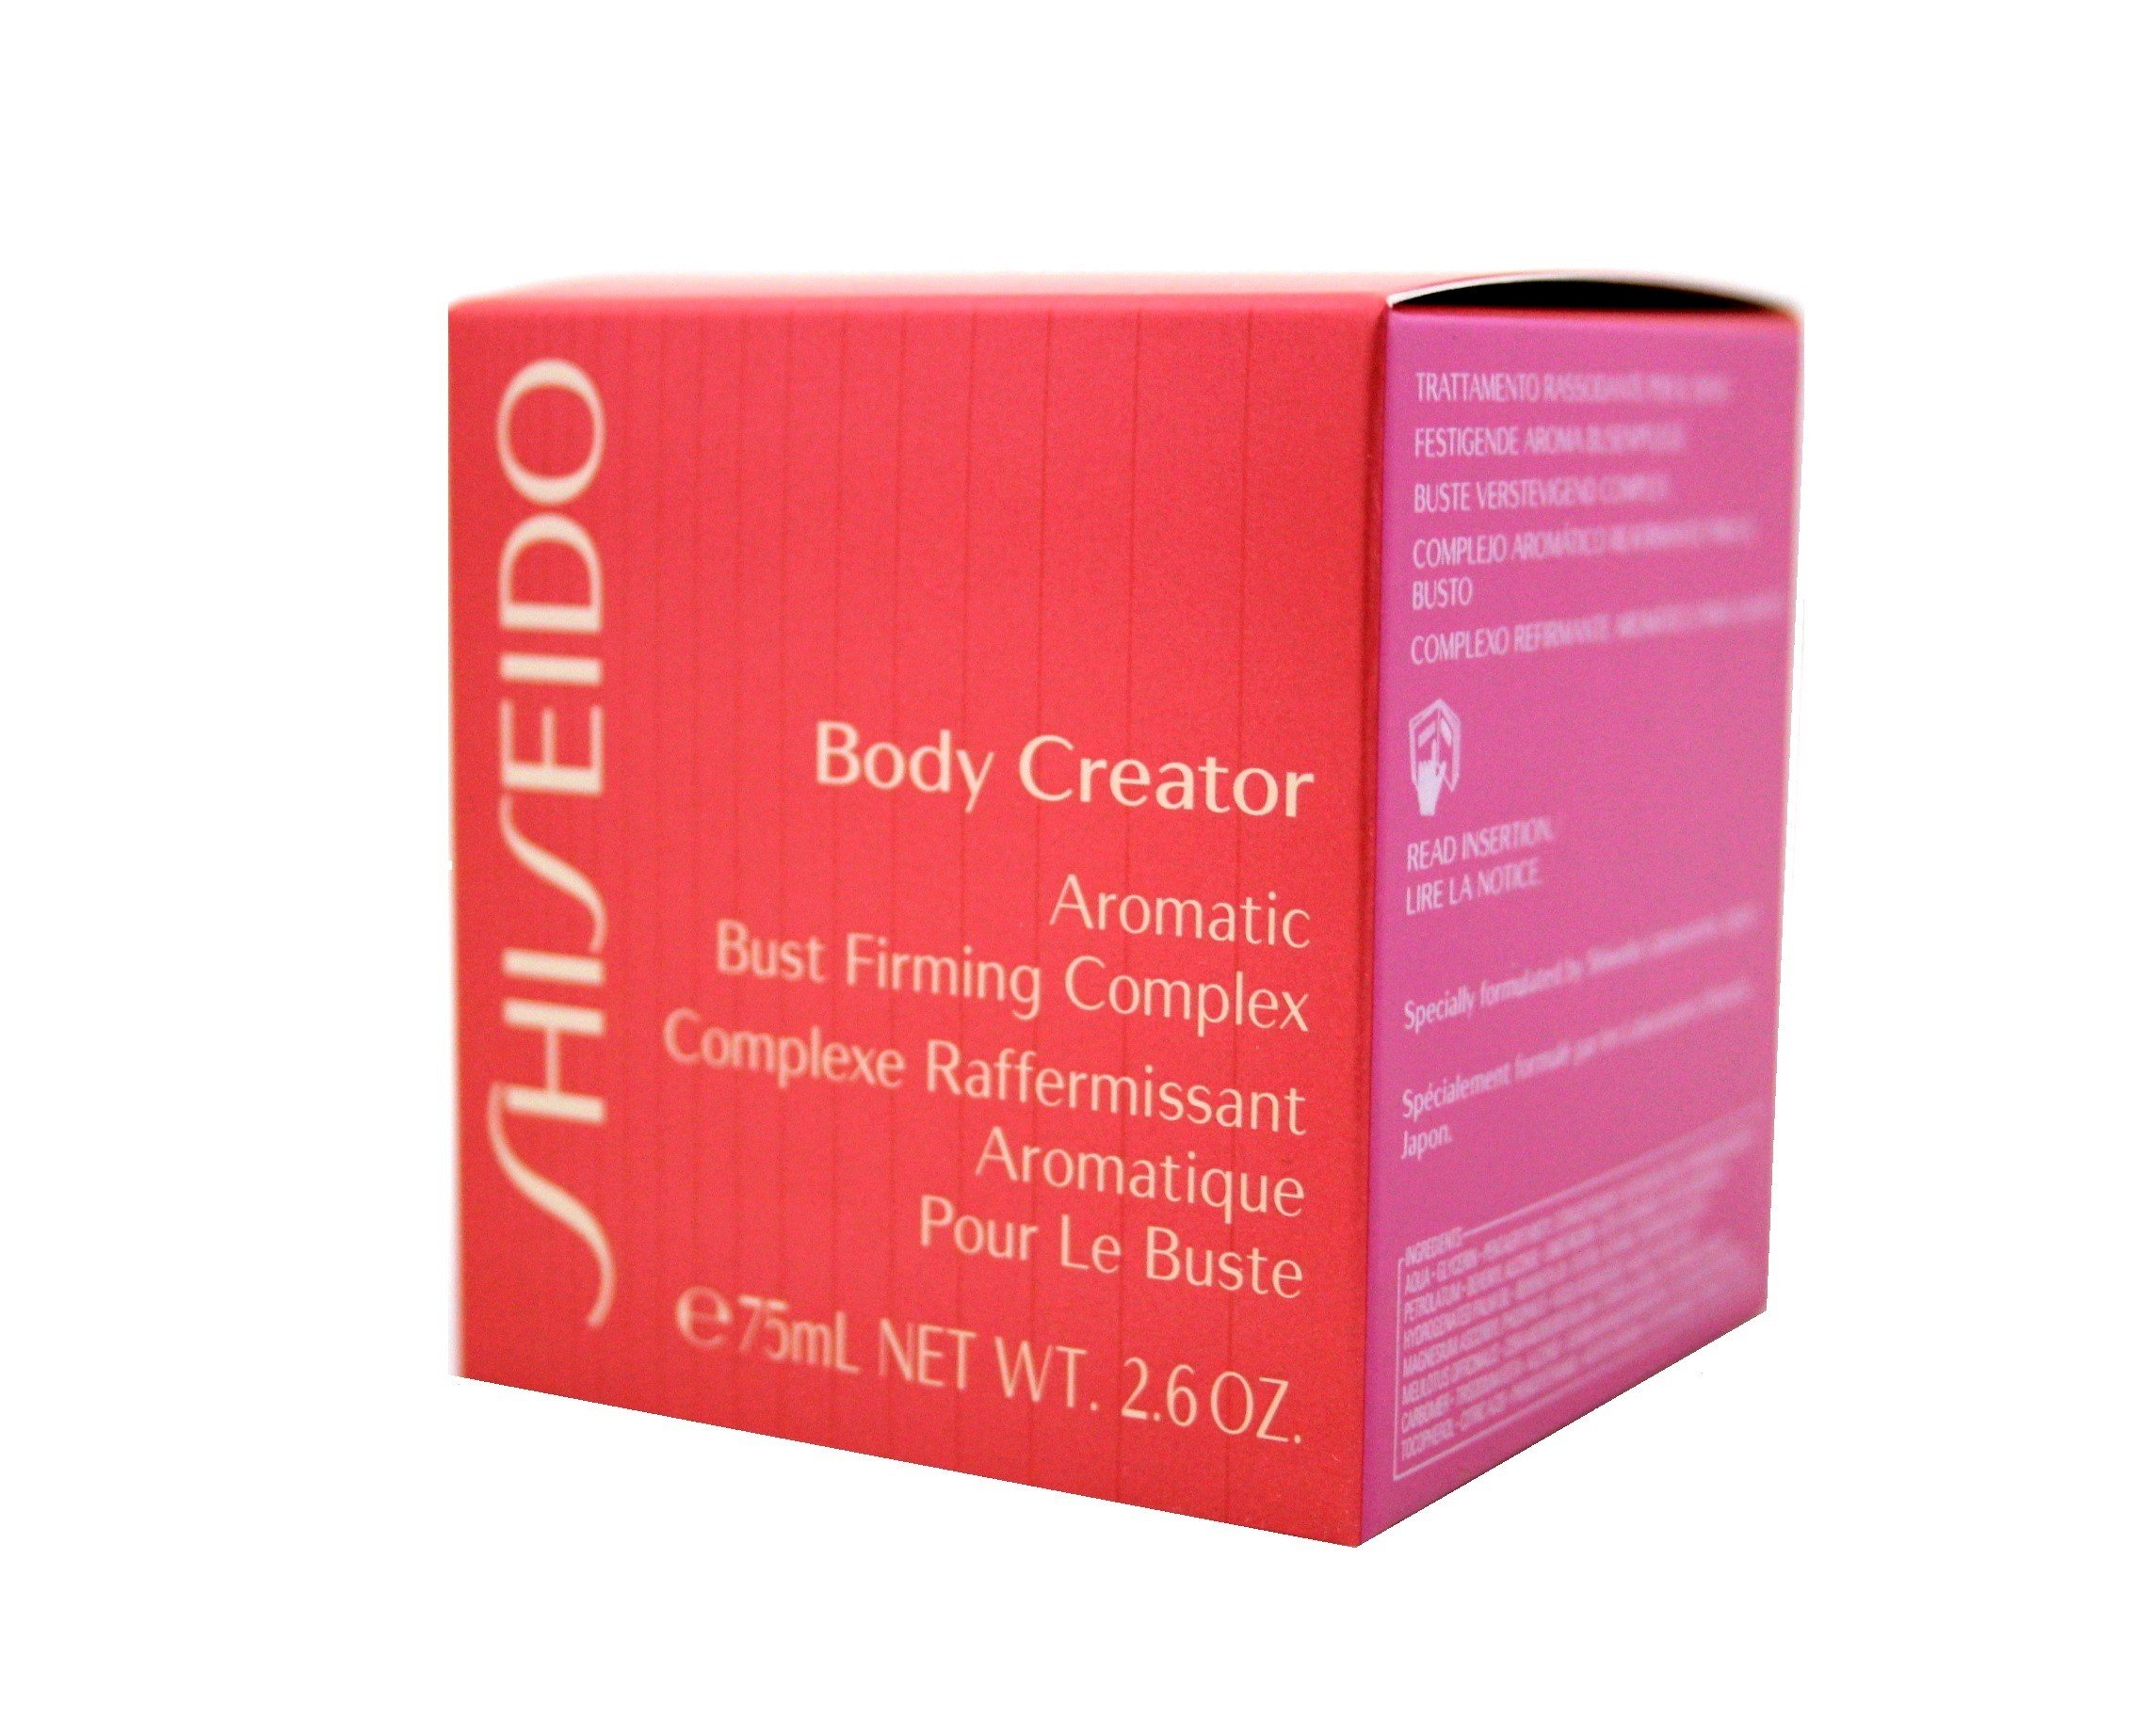 Shiseido Aromatic Bust Firming Complex